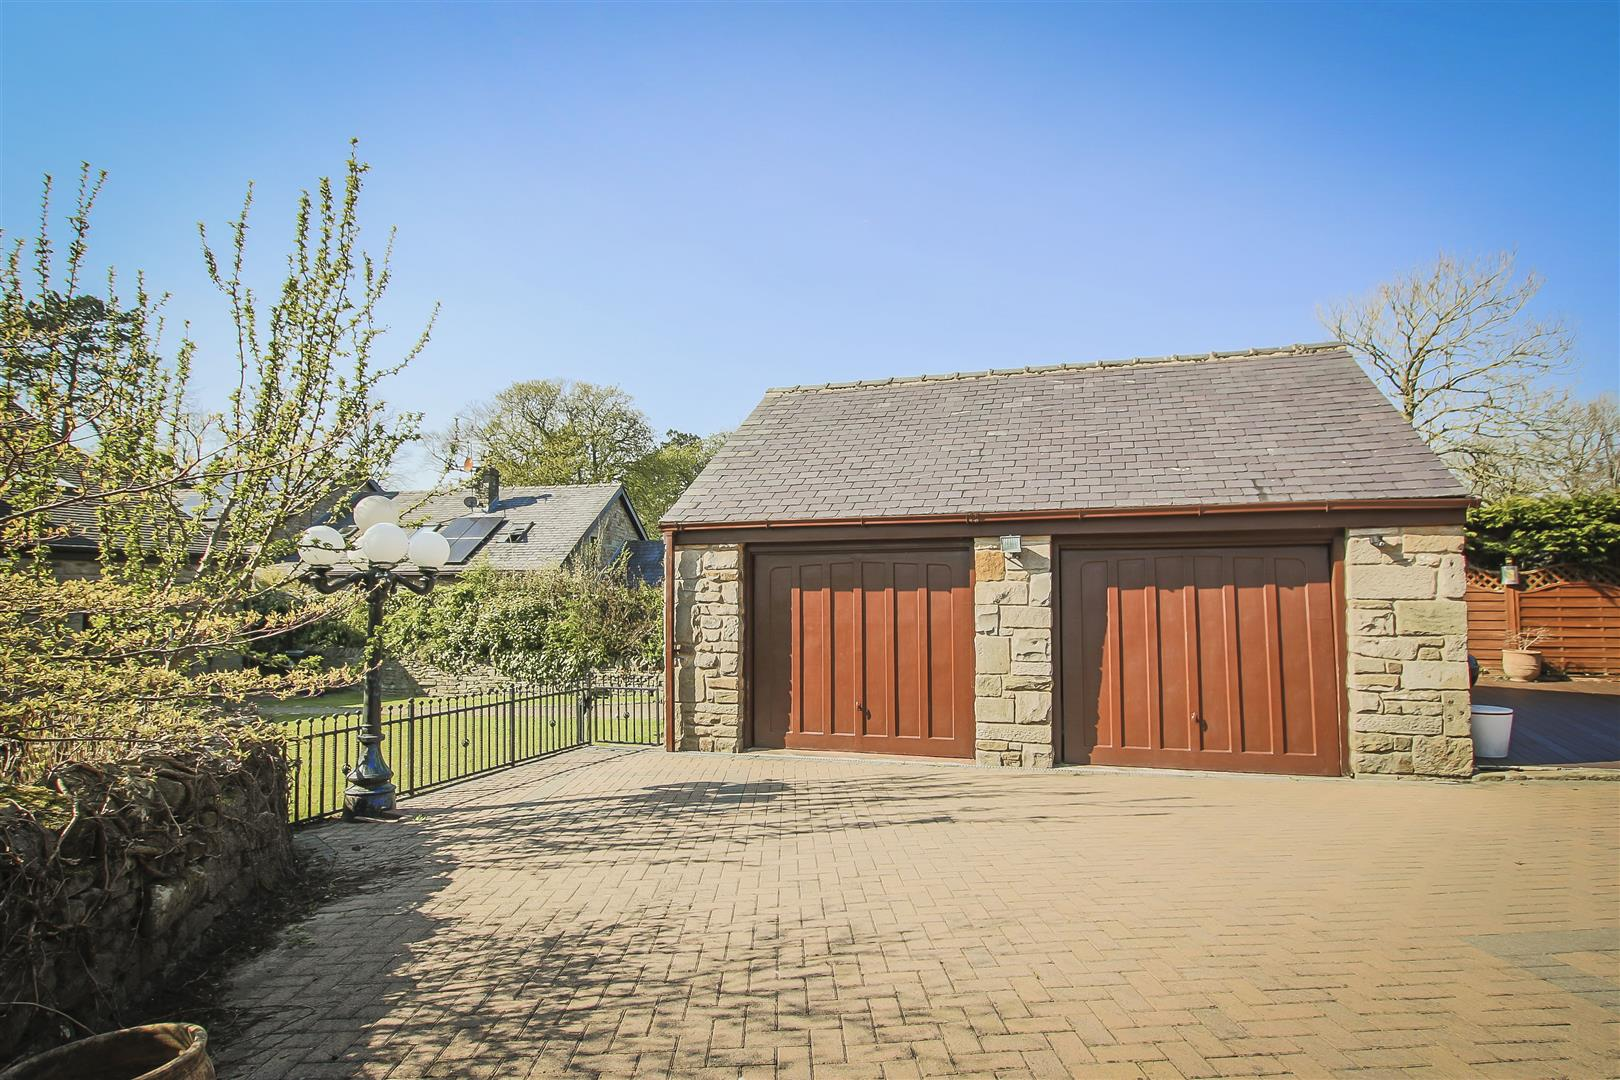 4 Bedroom Barn Conversion For Sale - Image 33